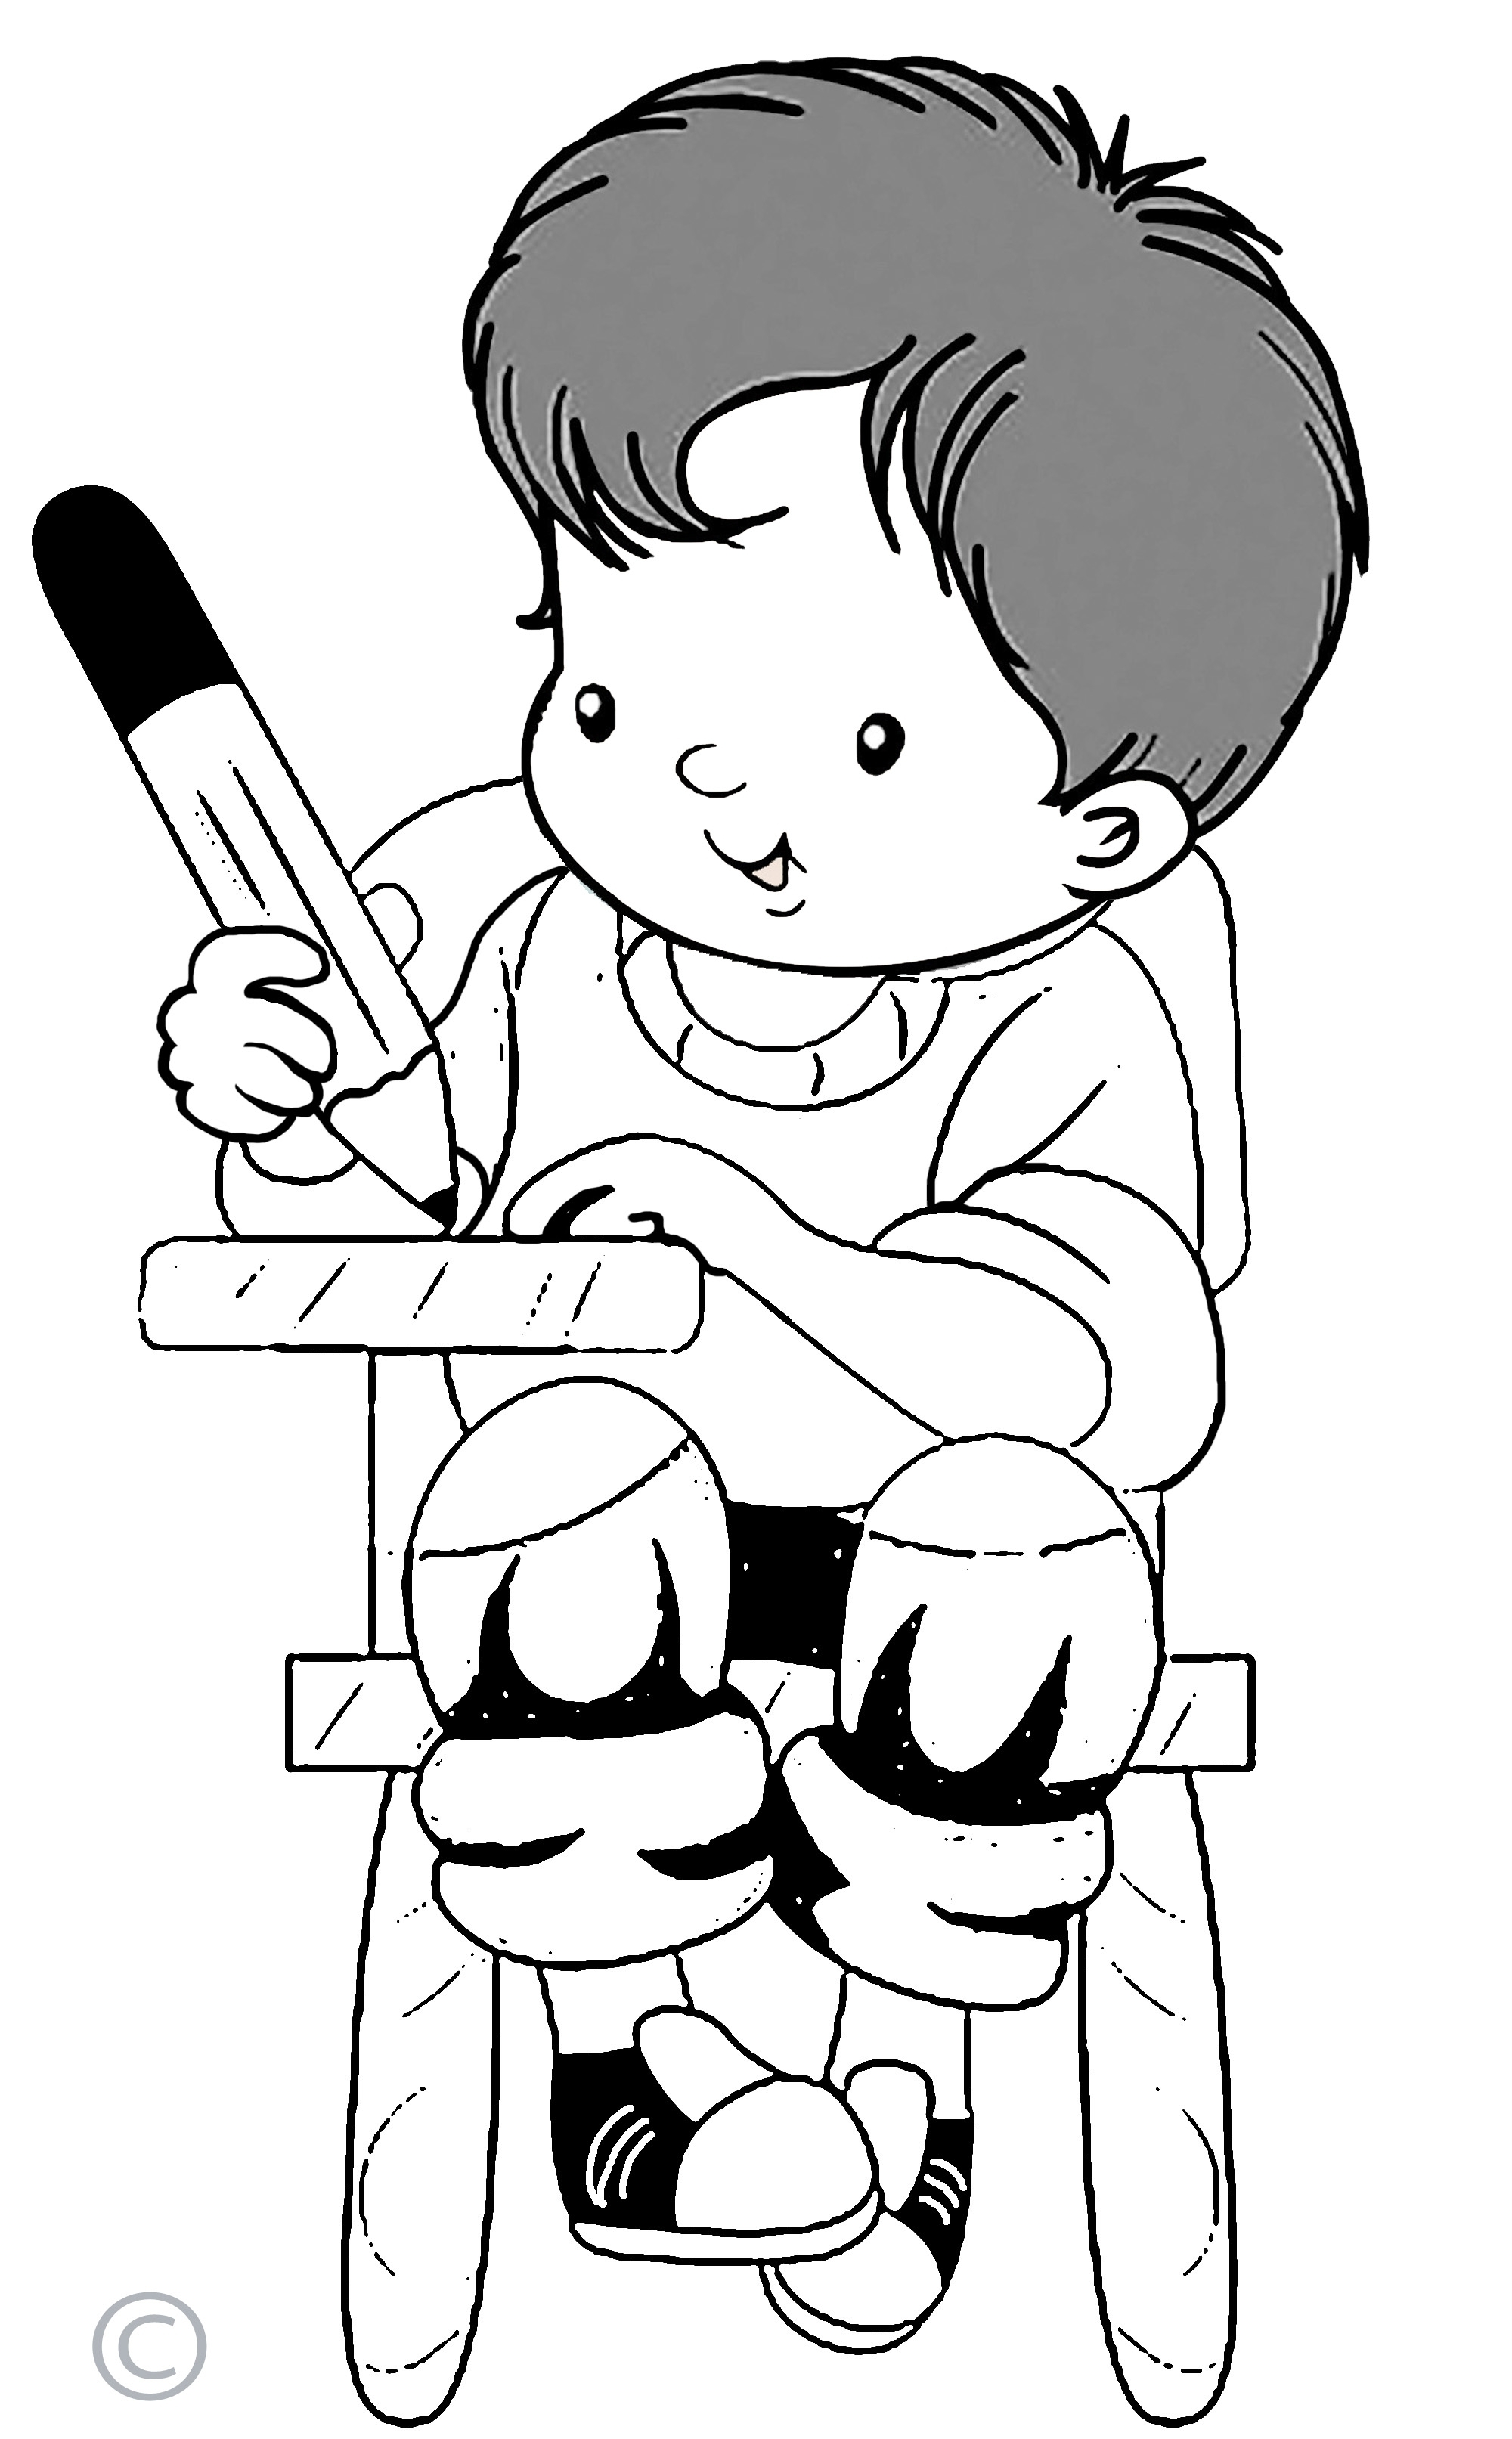 Kindergarten black and white clipart for writing clipart free Handwriting Clipart – Gclipart.com clipart free